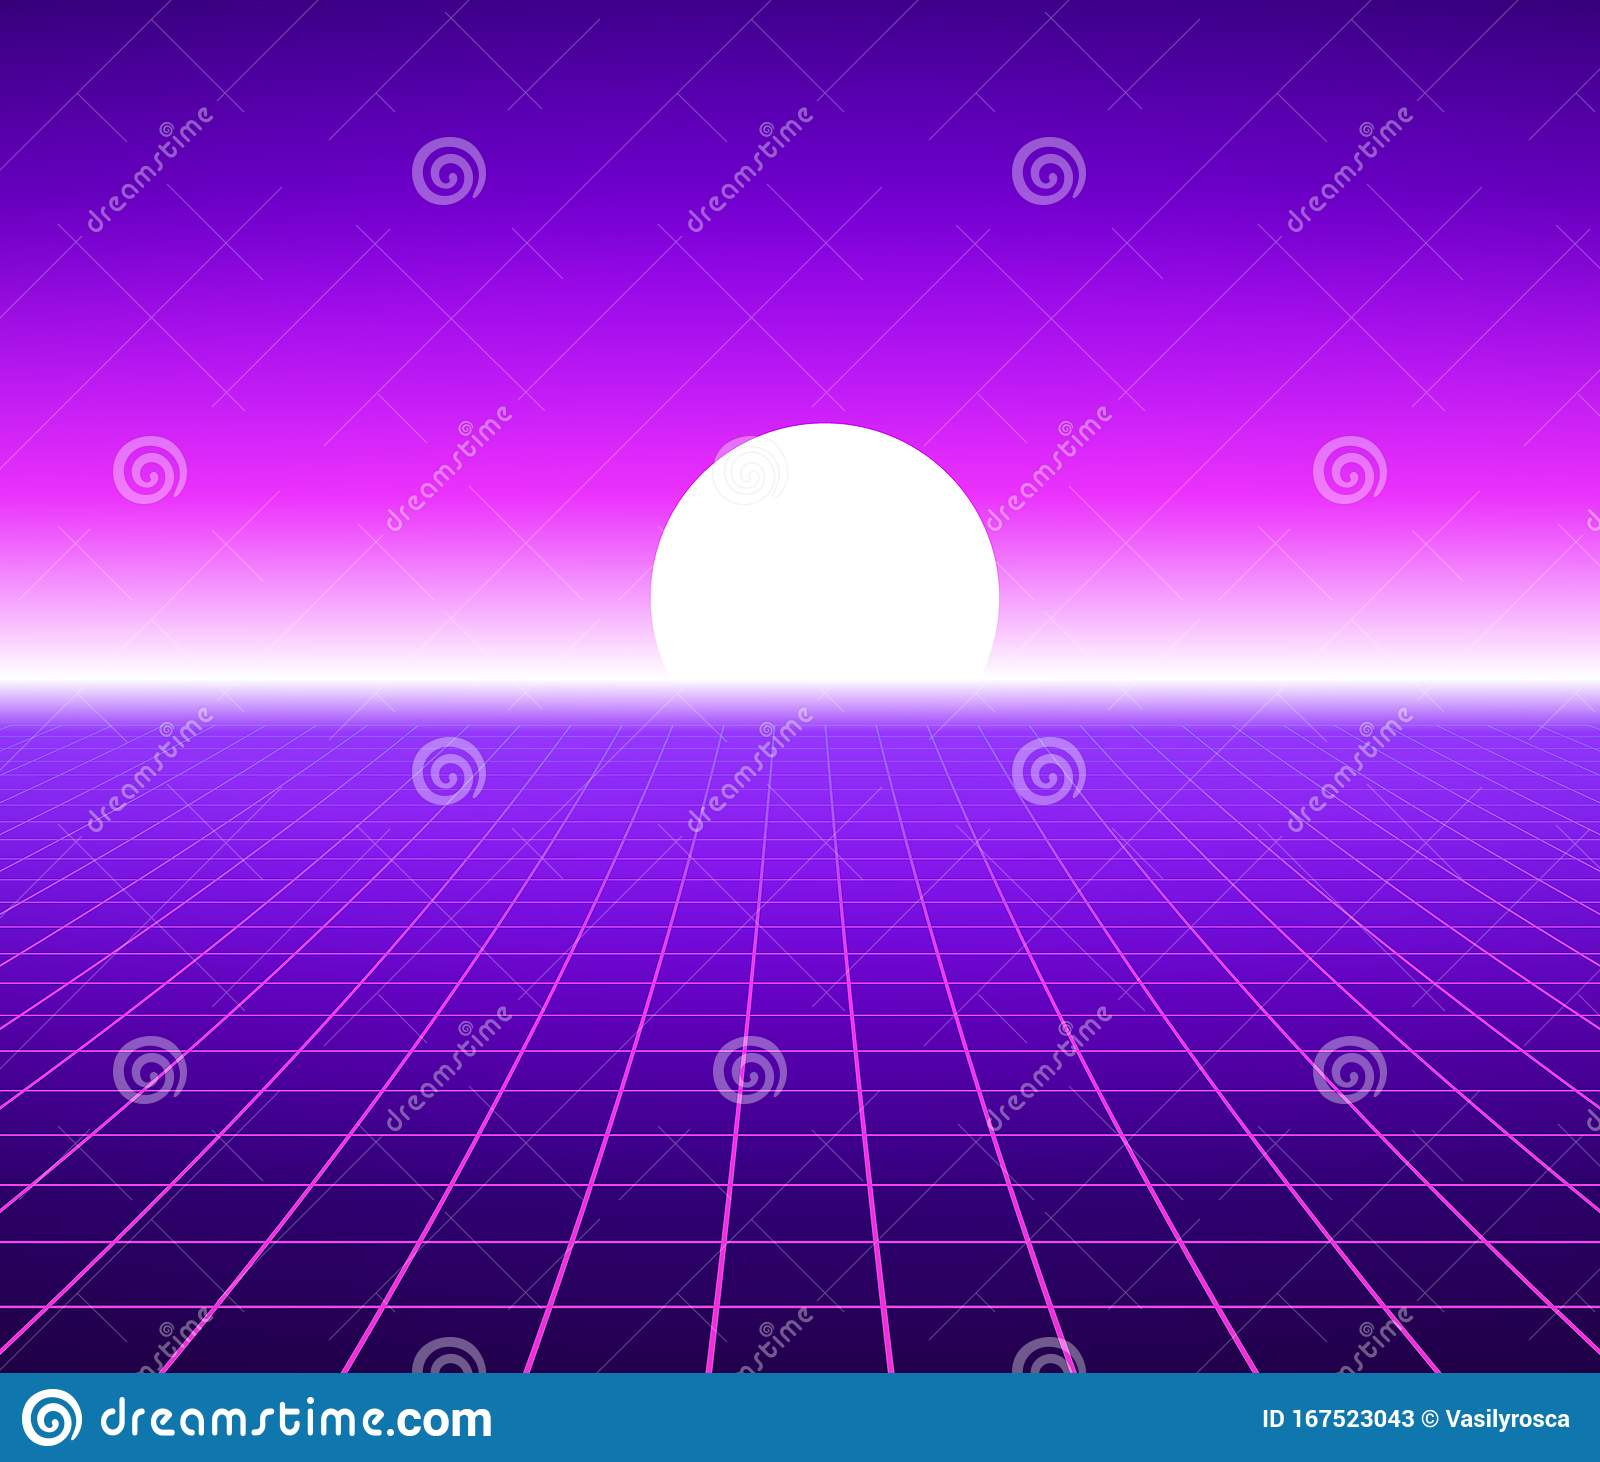 Synth Wave Retro Grid Background Synthwave 80s Vapor Vector Game Poster Neon Futuristic Laser Space Arcade Stock Vector Illustration Of Neon Rave 167523043